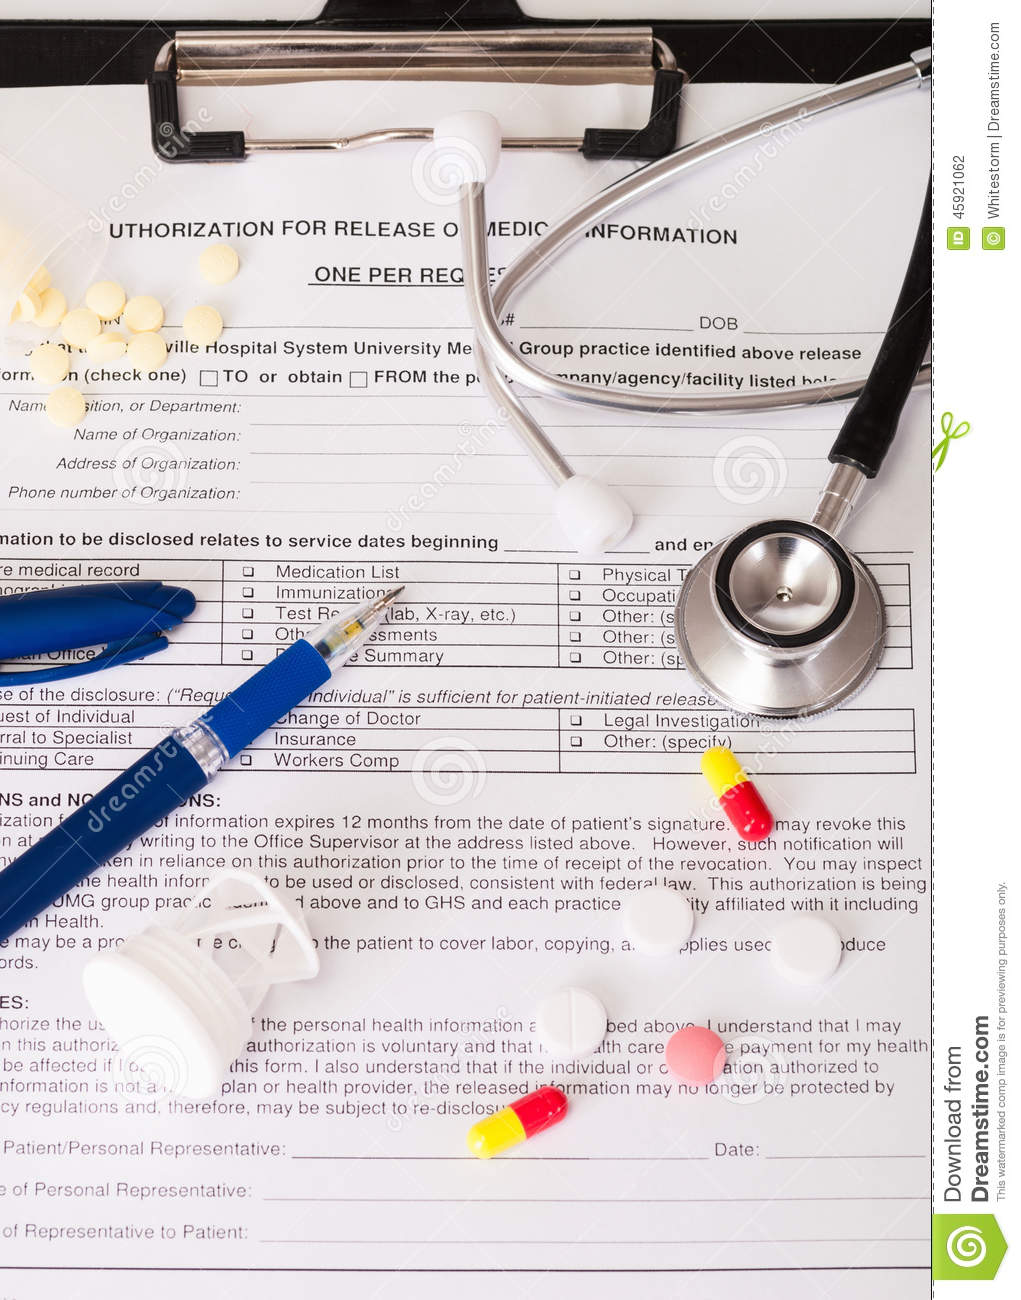 Medical form stock photo  Image of blue, care, doctor - 45921062